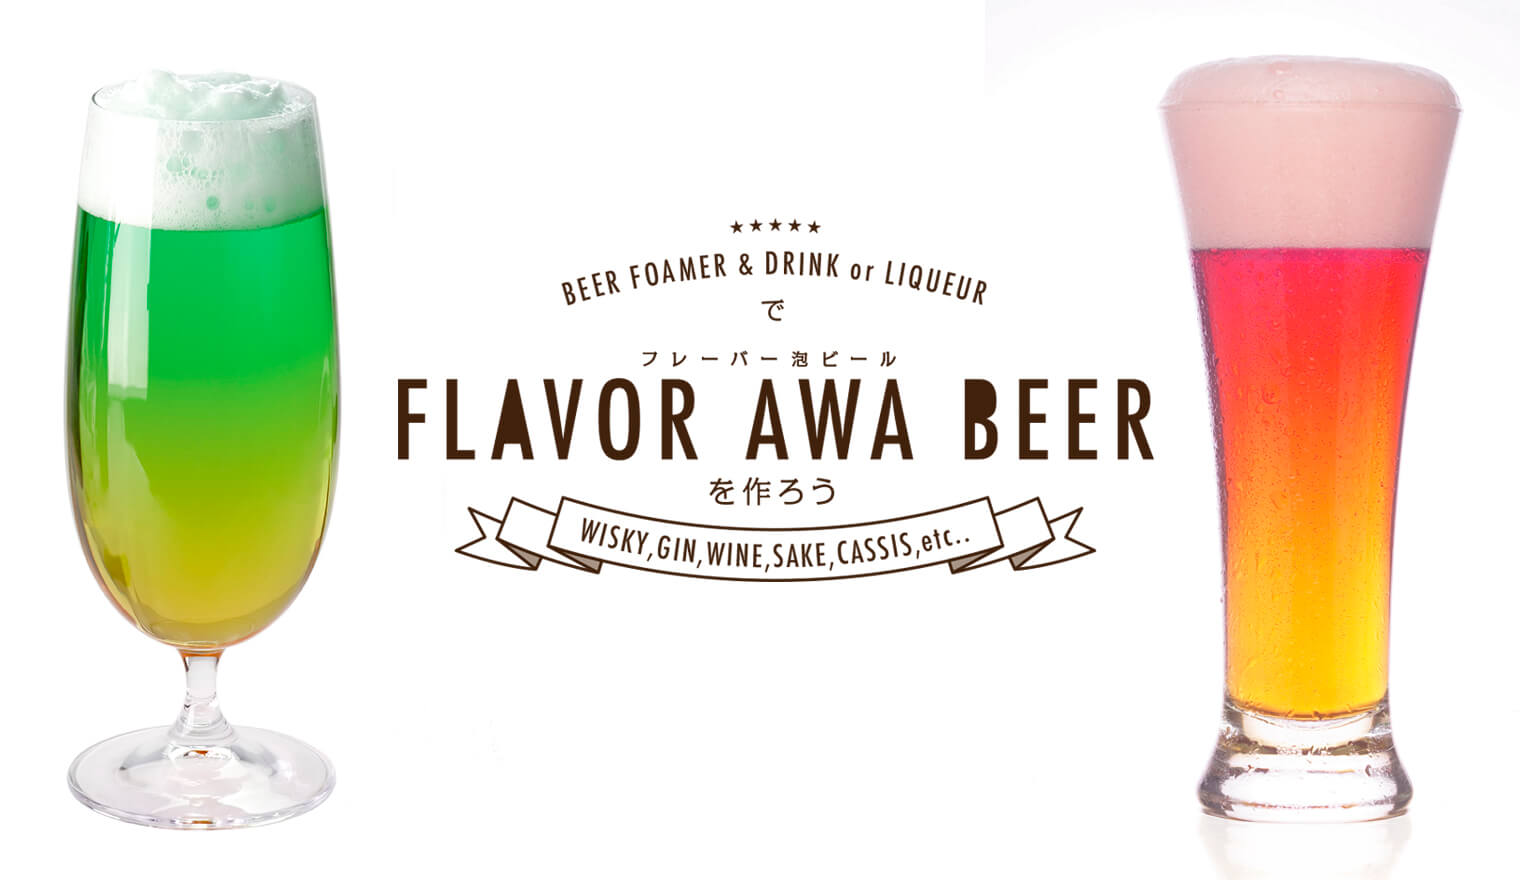 FLAVOR AWA BEERを作ろう!